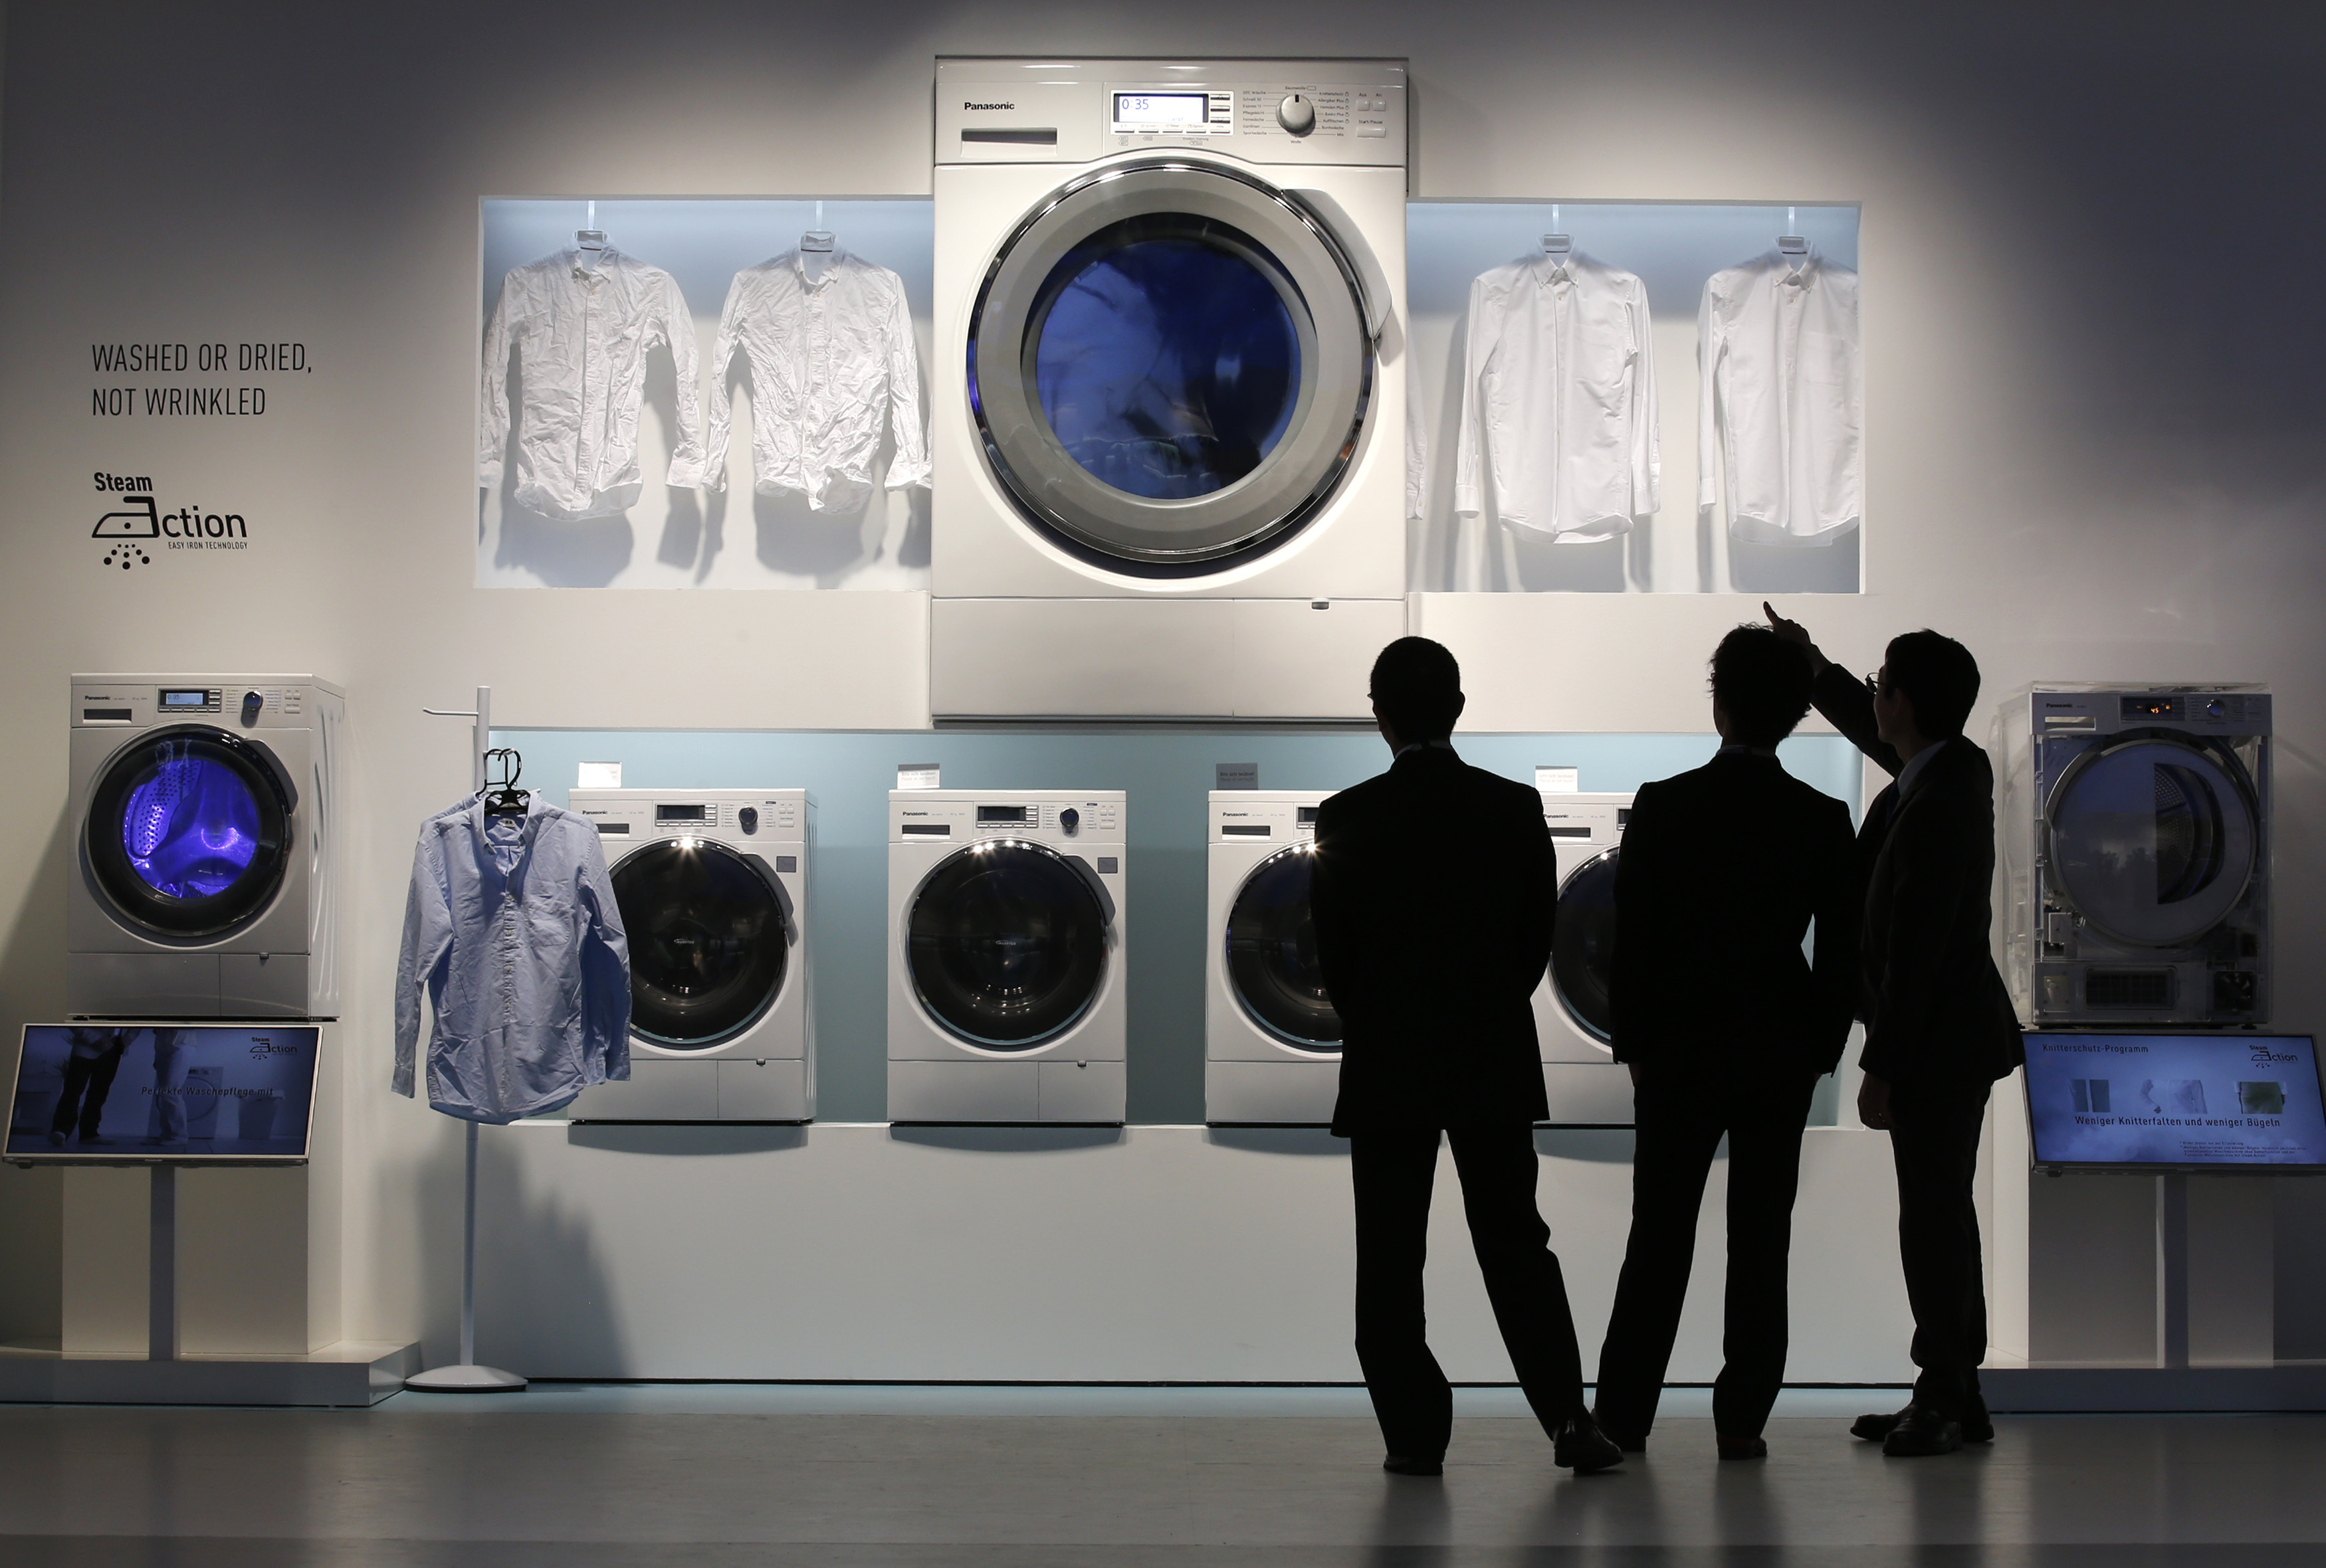 Want to know how Trump's tariffs will work out for Americans? Consider the washing machine